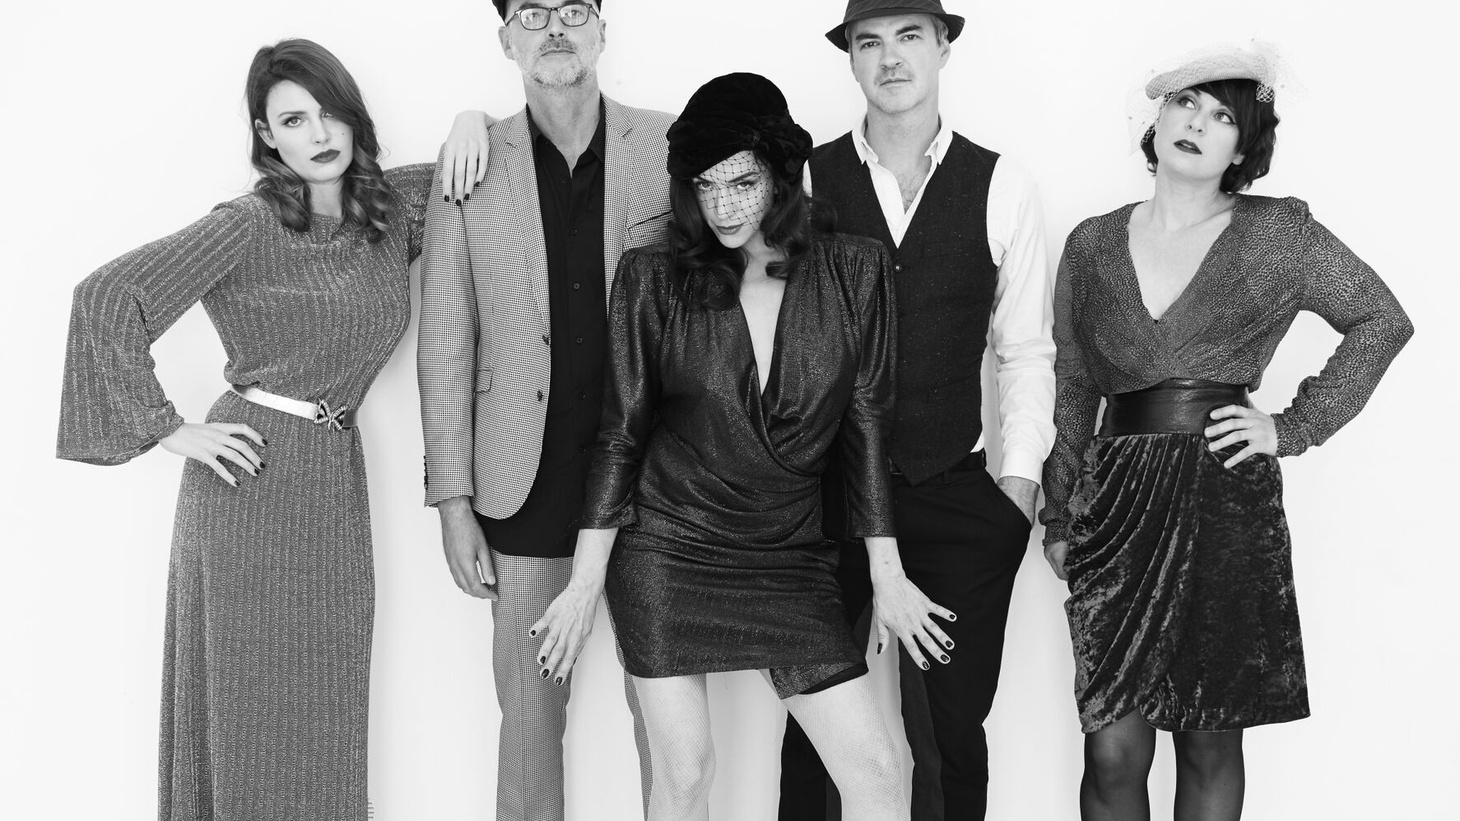 Best known as a French cover band, Nouvelle Vague plant its signature bossa nova sound onto classic punk and new wave hits.